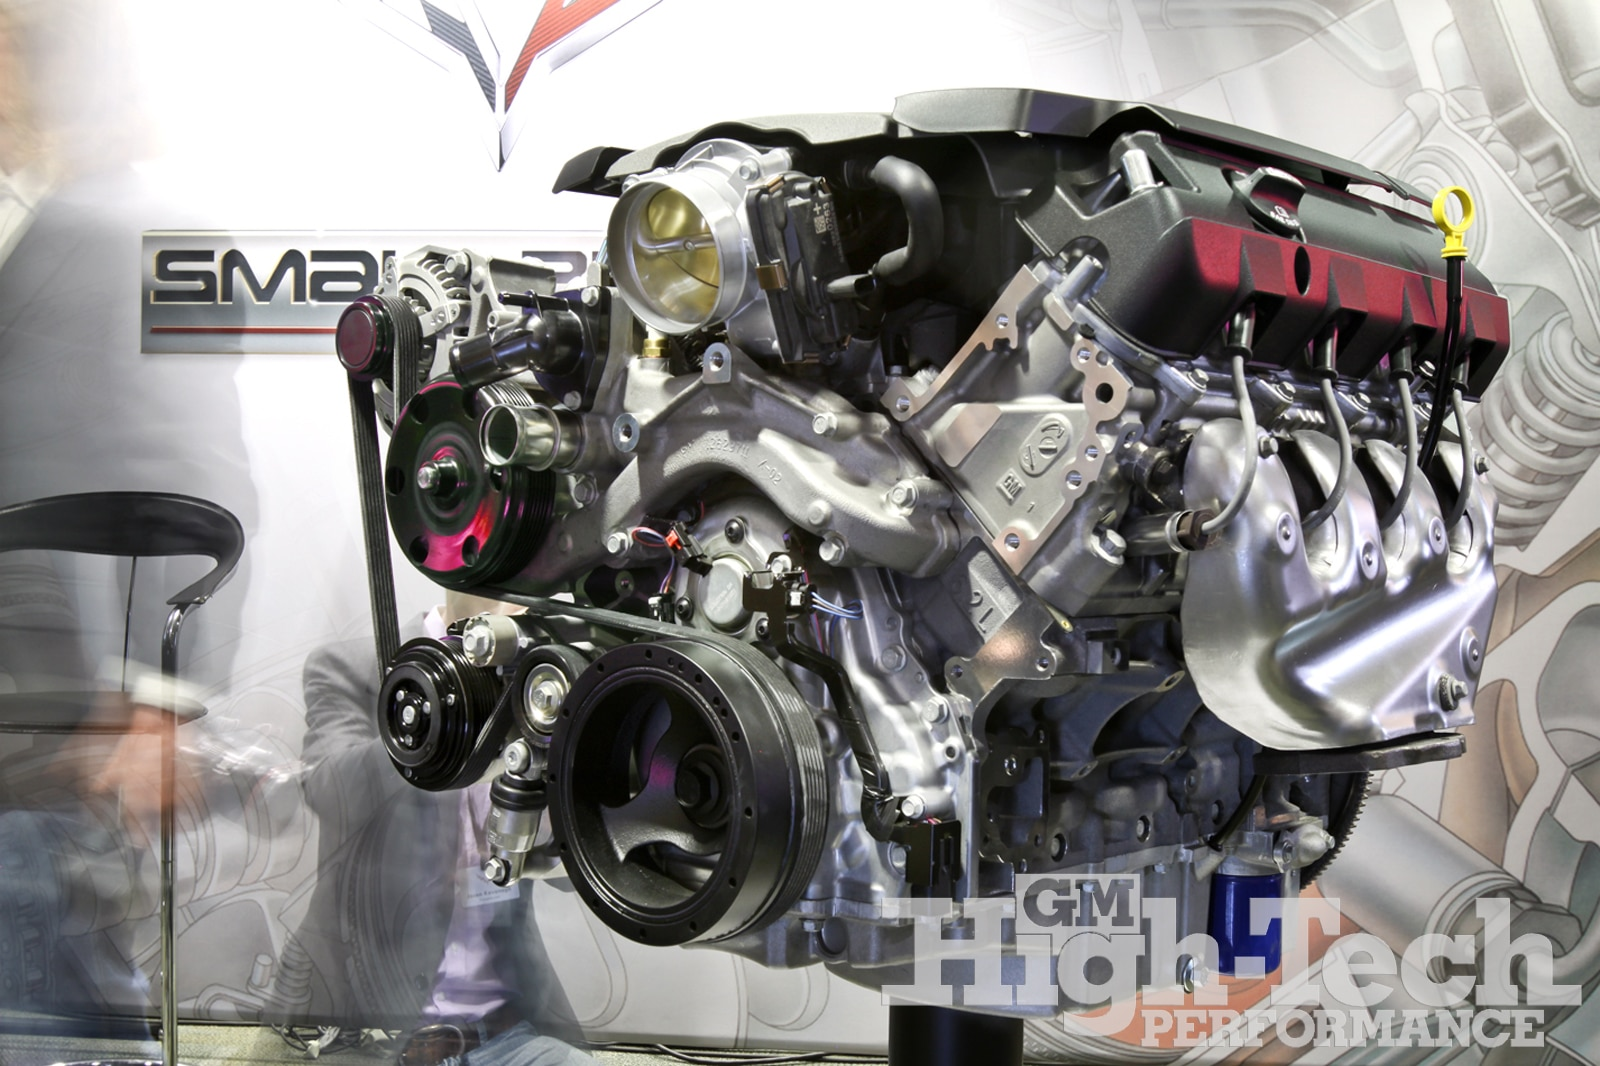 Inside GM's all-new 6 2-liter Gen 5 LT1 Small-Block - GM